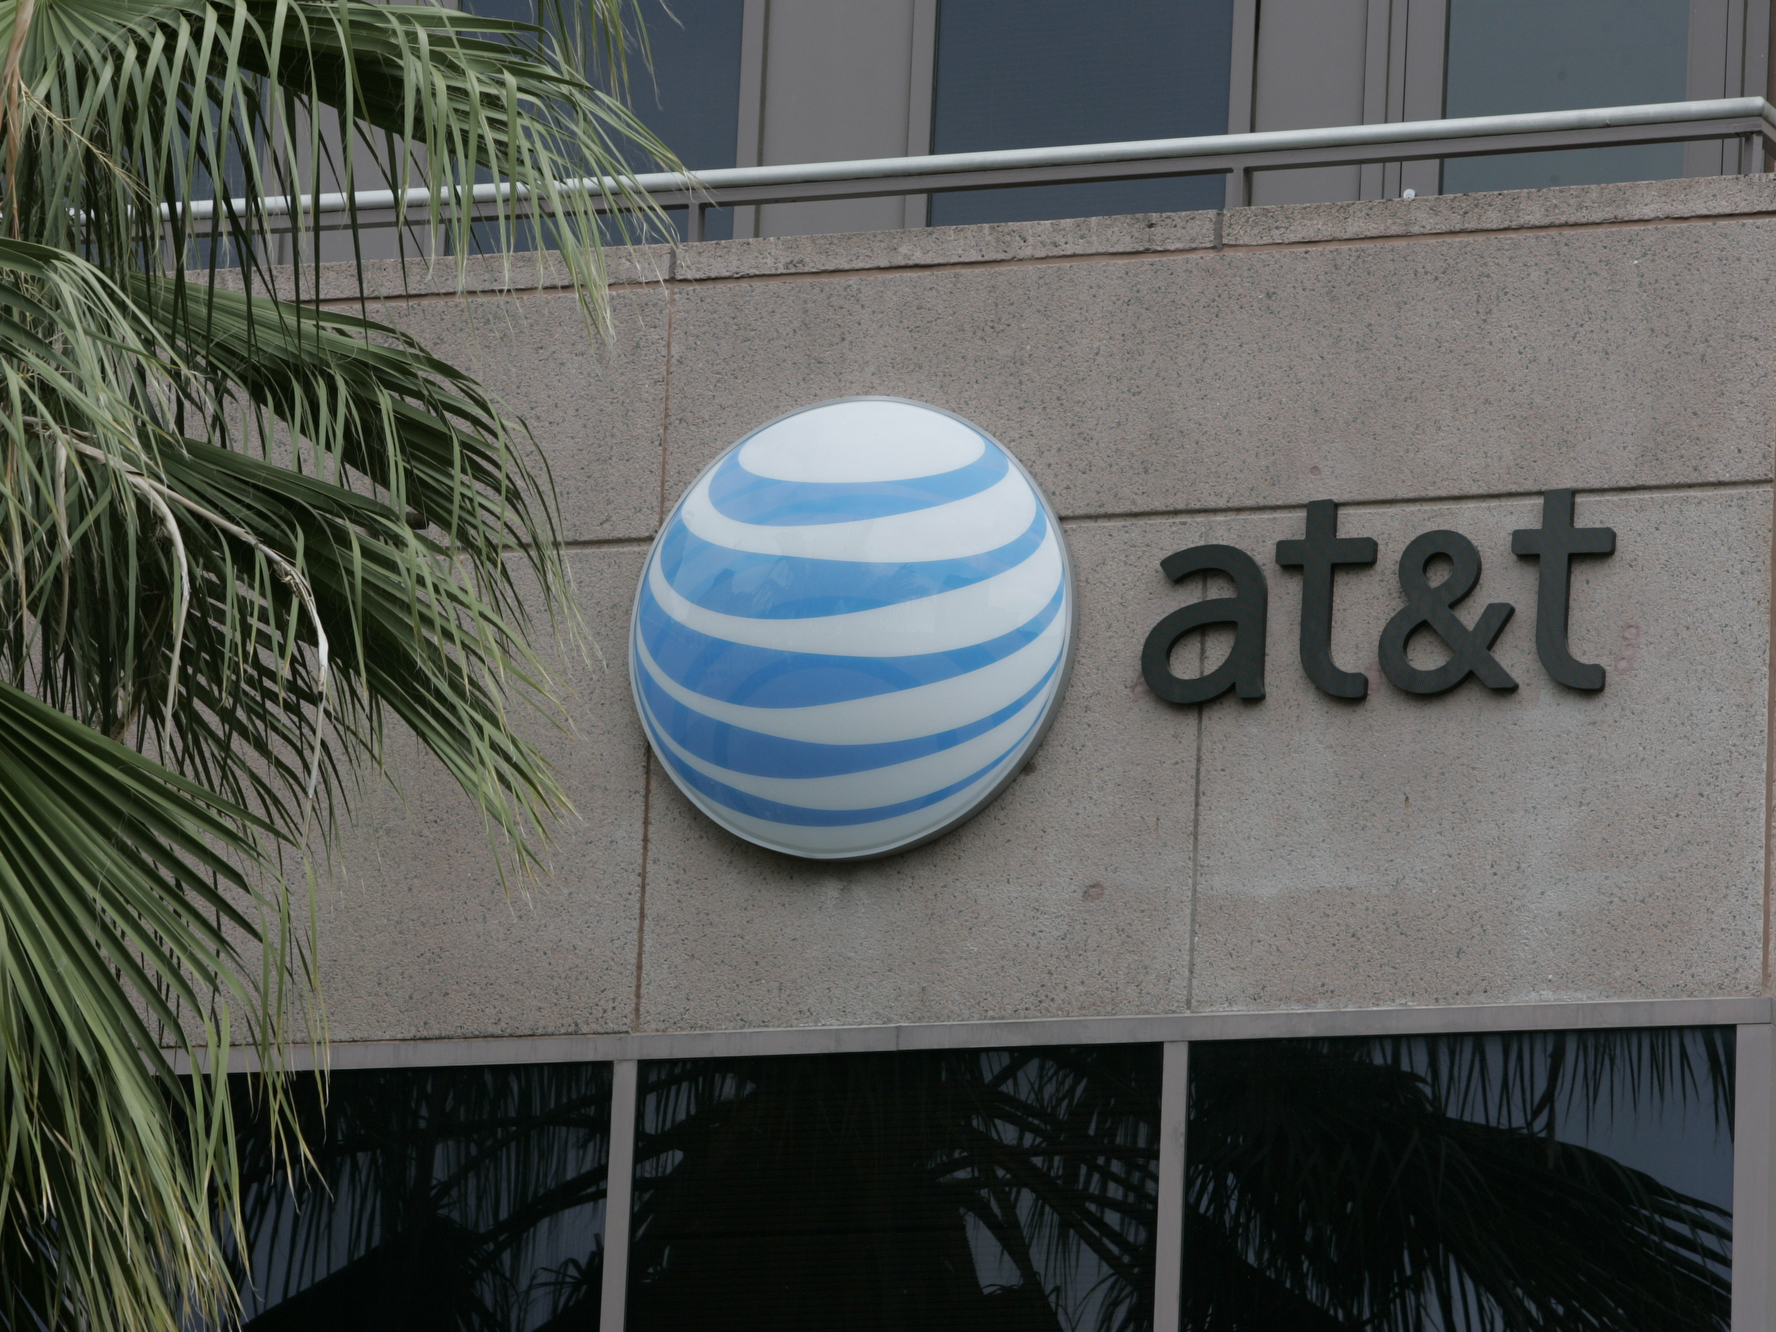 Man Accused Of Bribing AT&T Employees In Conspiracy To Unlock